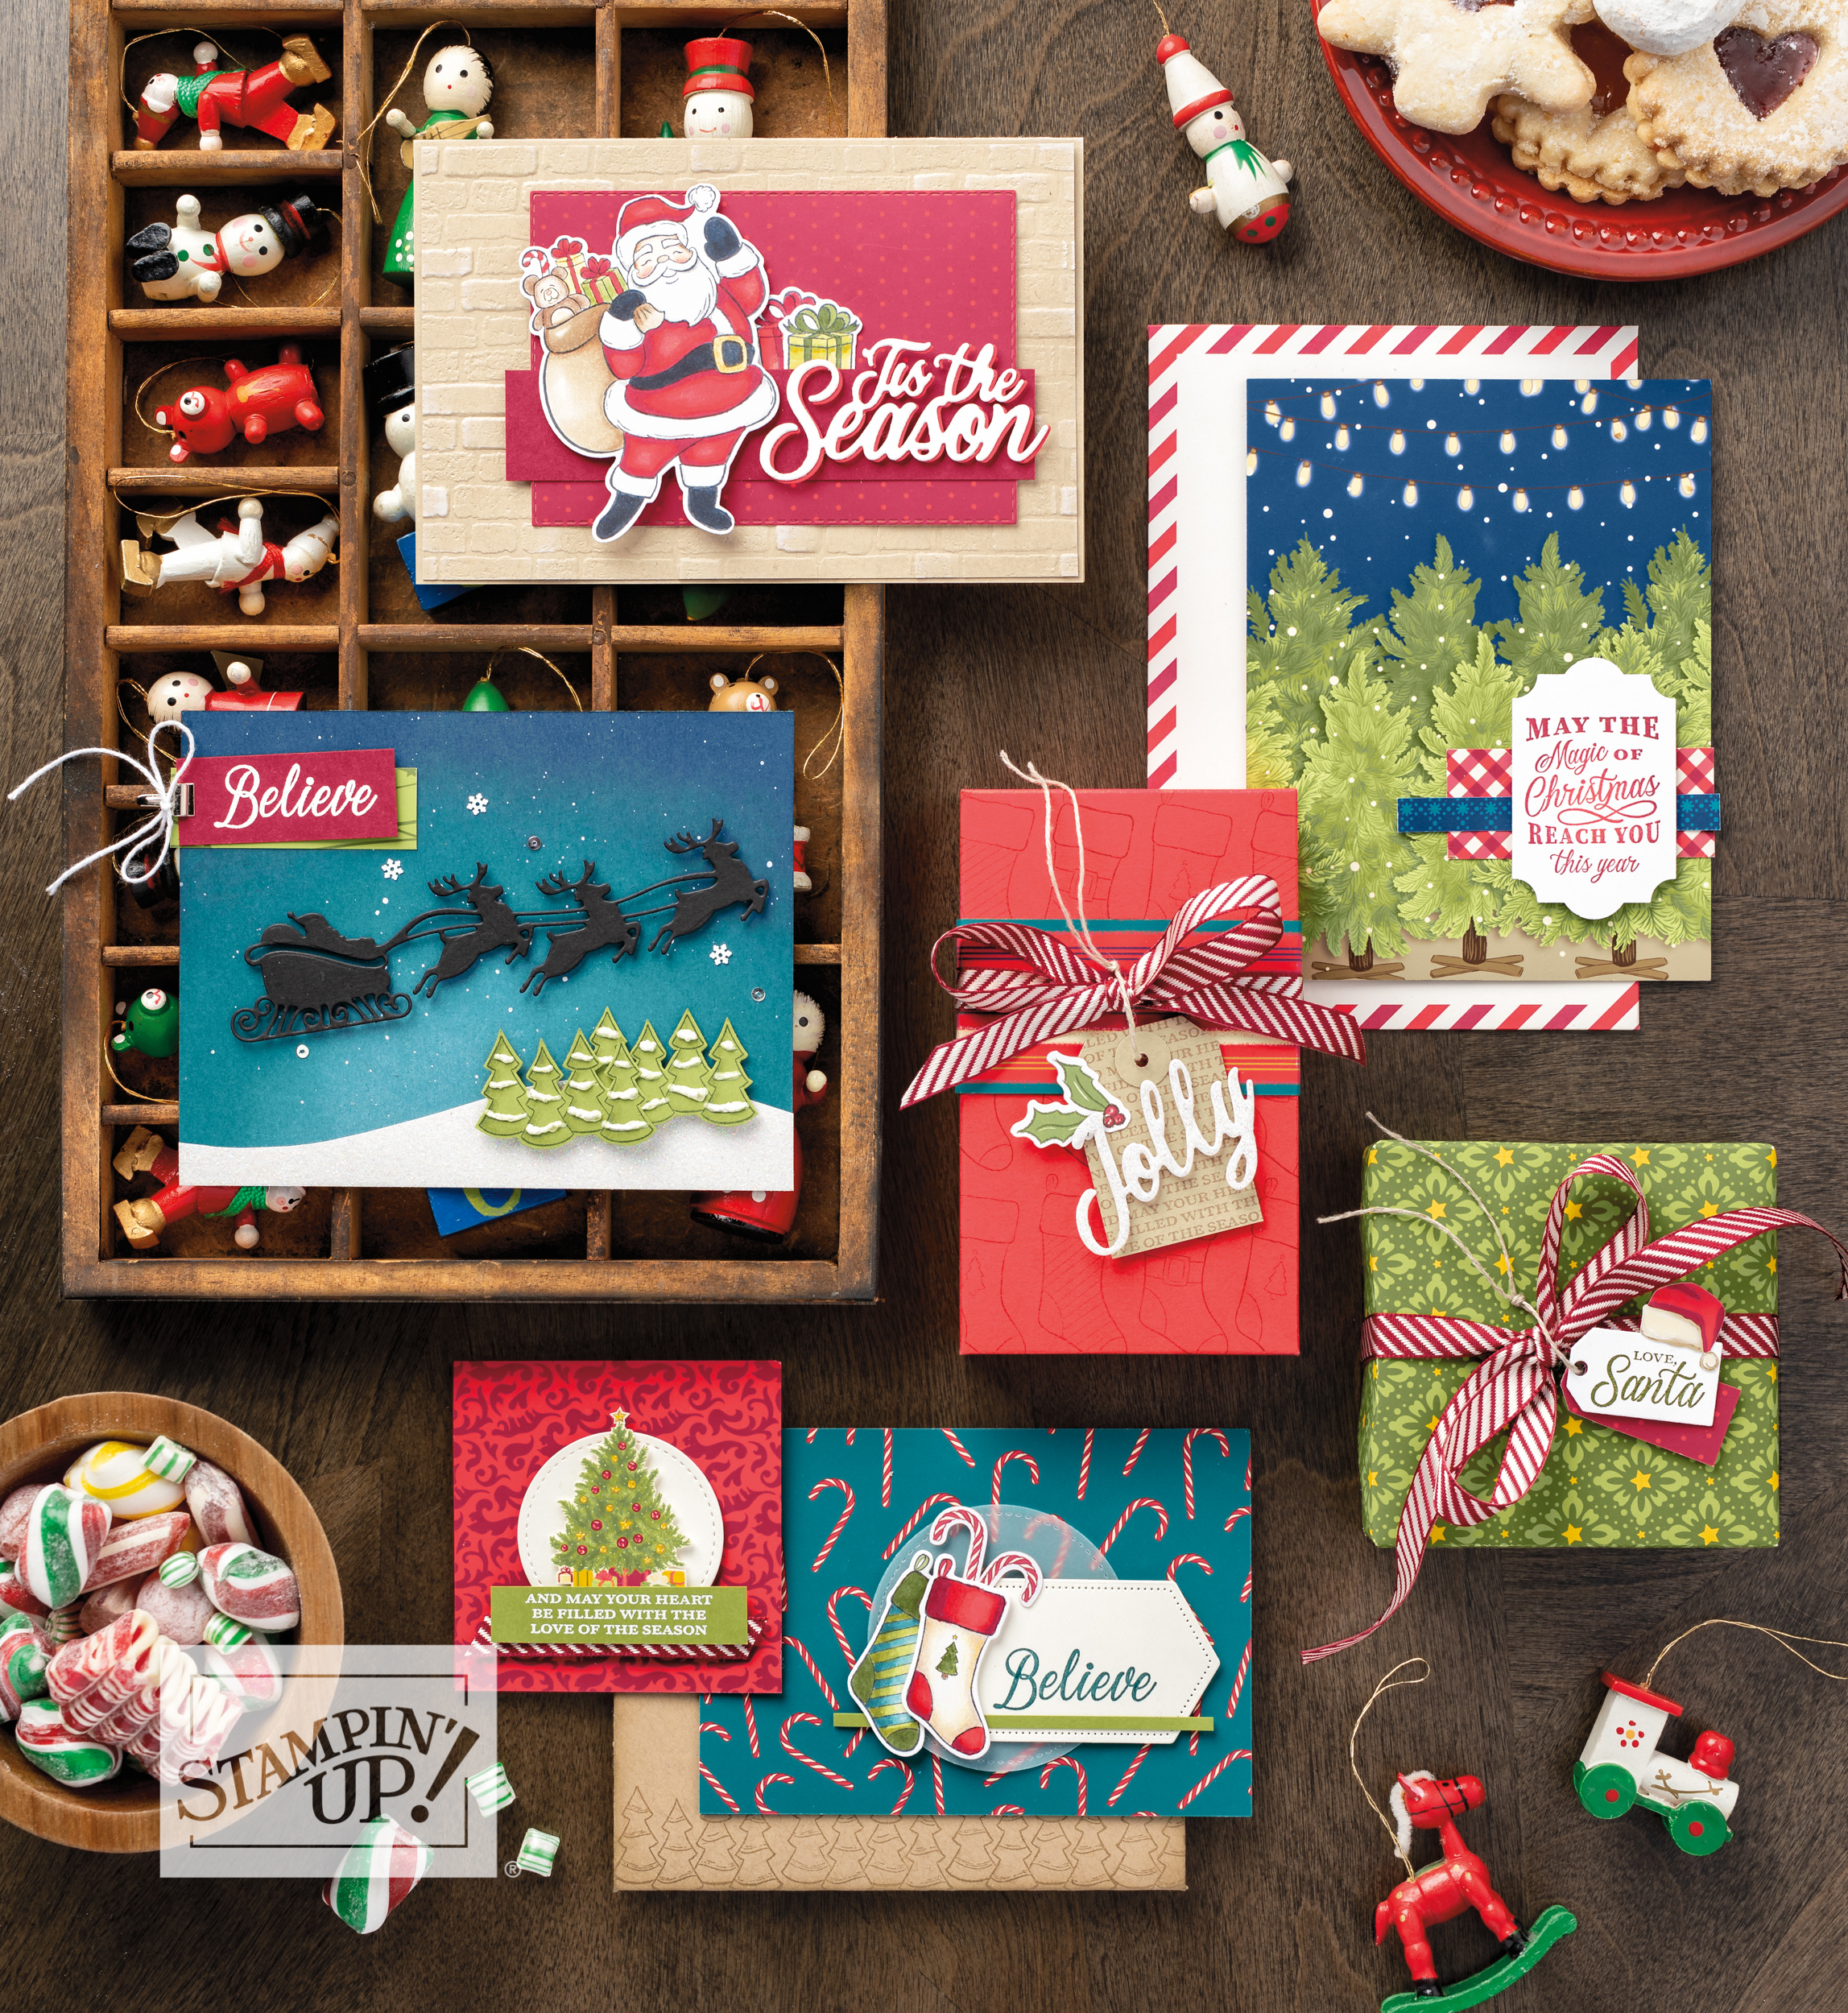 Night Before Christmas Suite with Wendy Lee, stampin Up, SU, #creativeleeyours, hand made card, tags, gifts, package, treats, journal, friend, birthday, hello, thanks, celebration, best wishes,christmas, holiday, kindness, creatively yours, creative-lee yours, DIY, pattern paper, santa, candy cane, stocking, fast & easy, scrapbooking, memories